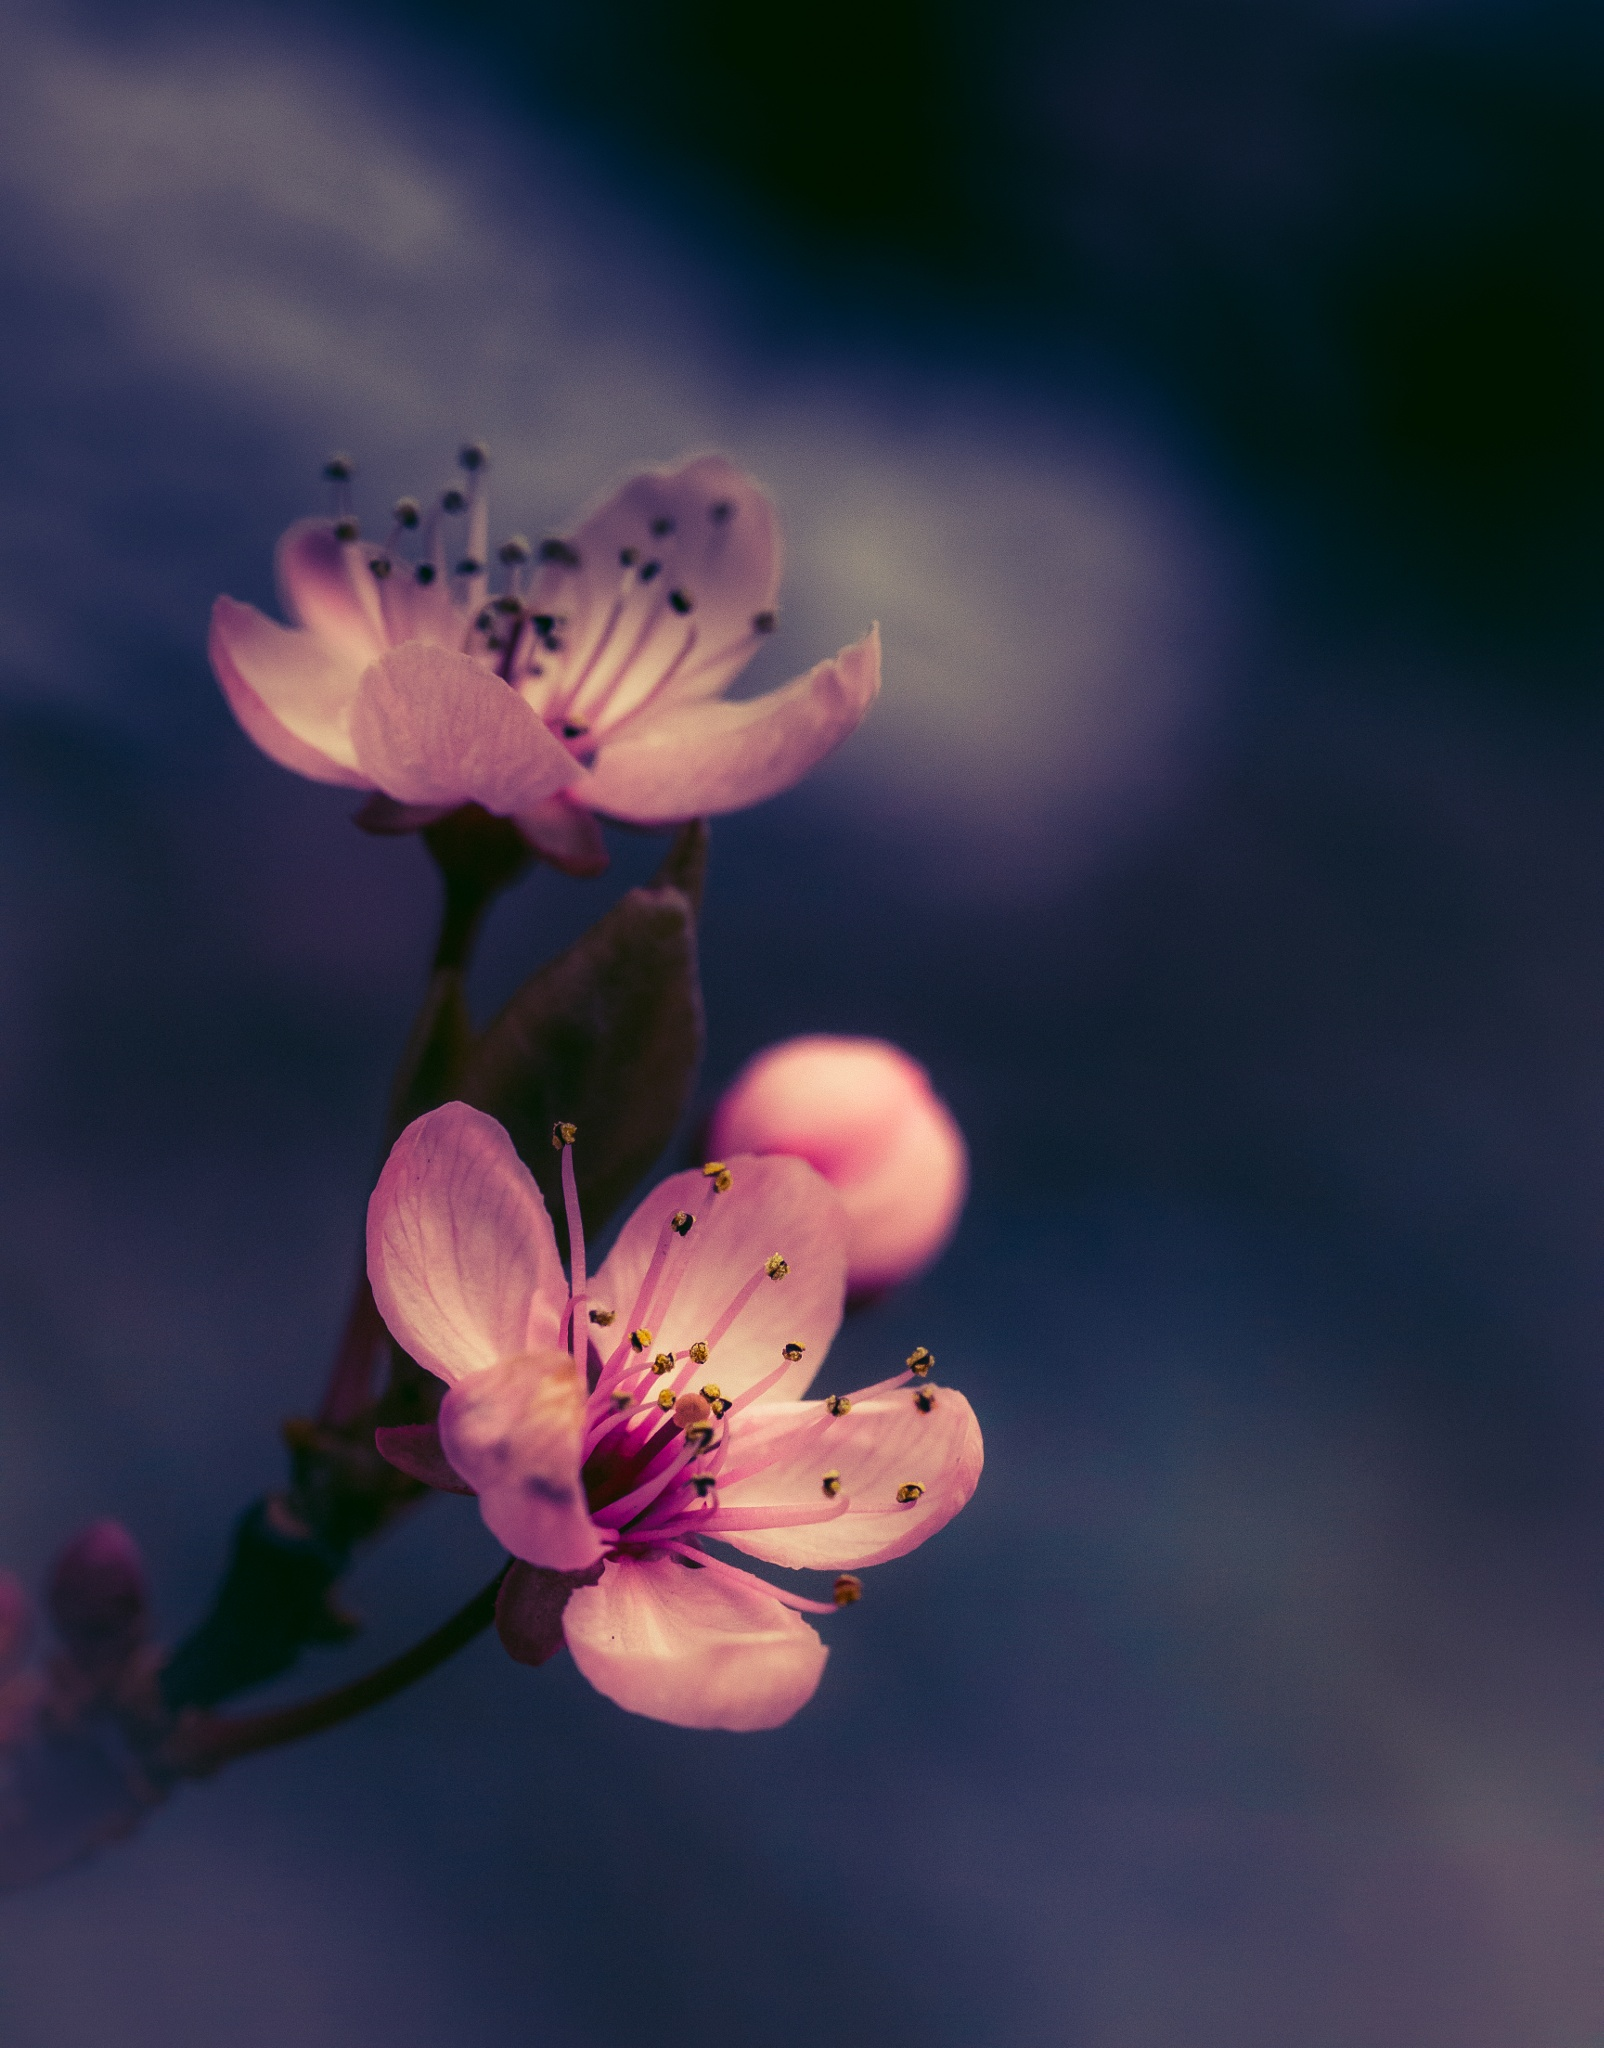 More blossom by Sarah Walters